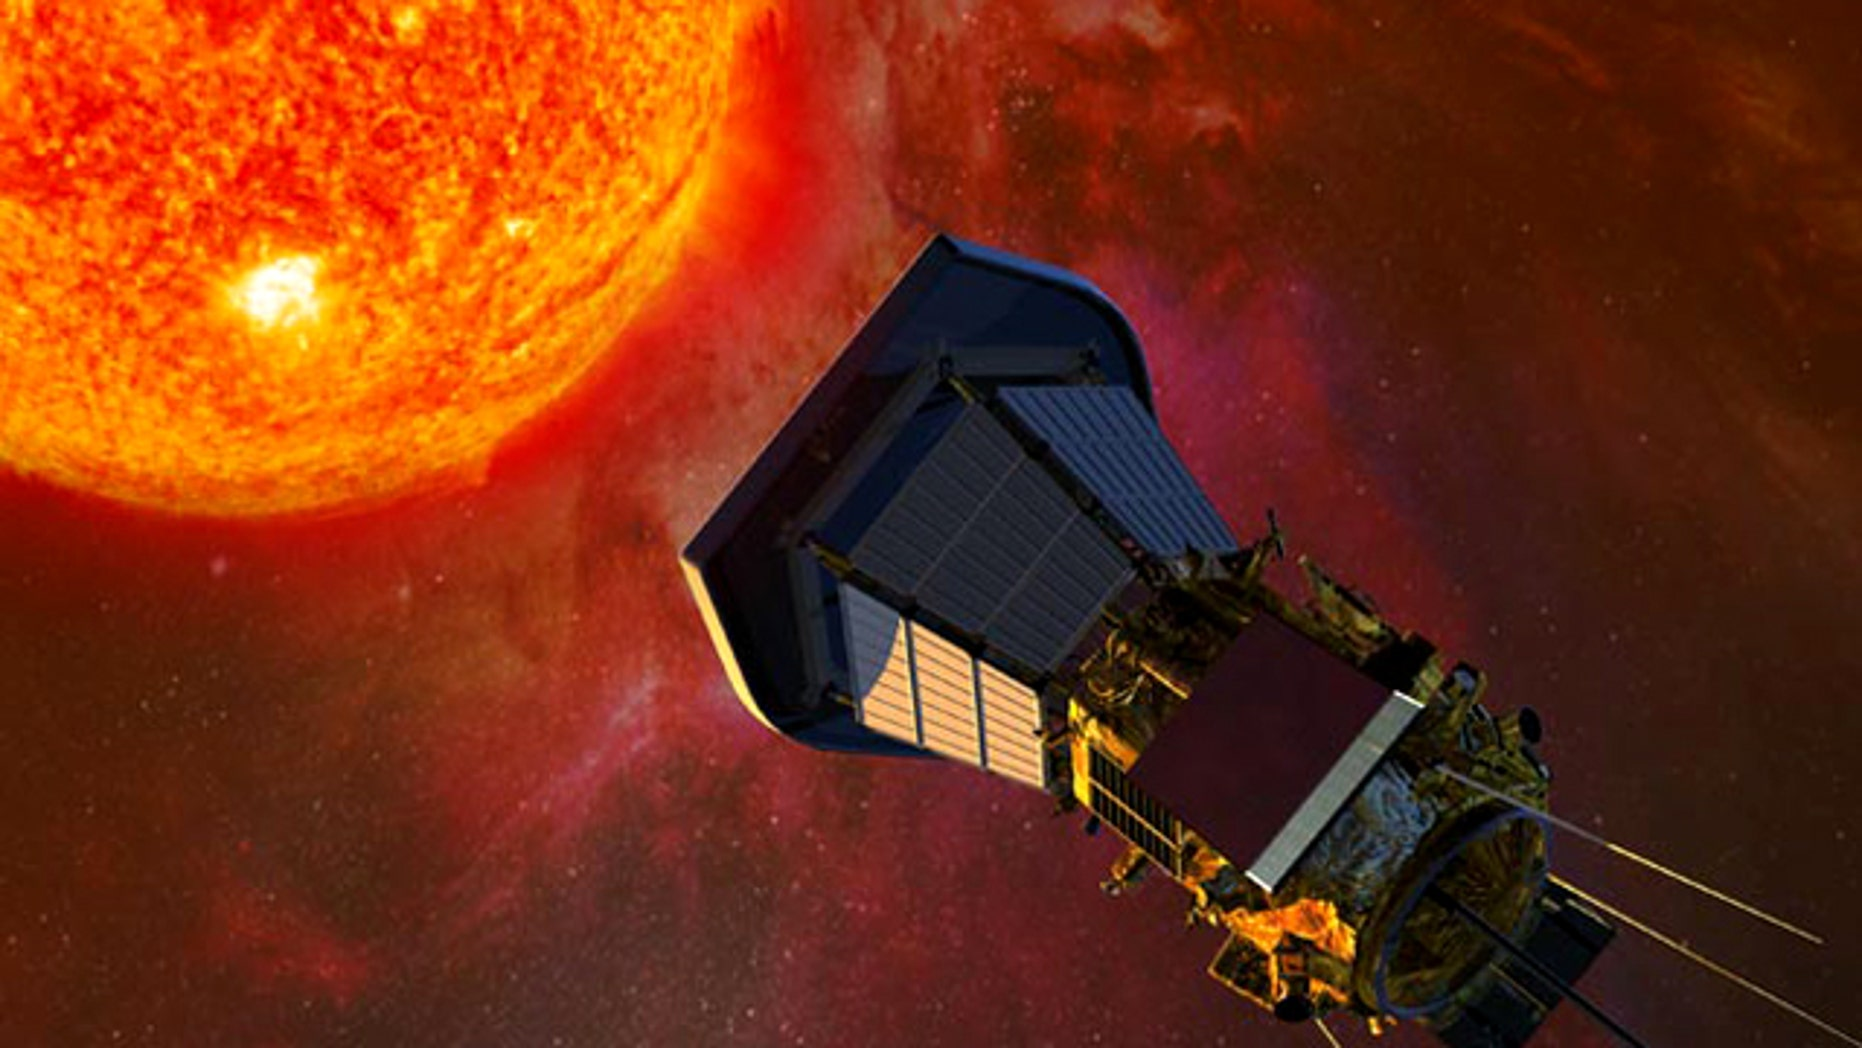 The Solar Probe Plus spacecraft, with solar panels folded into the shadows of its protective shield, gathers data on its approach to the Sun.